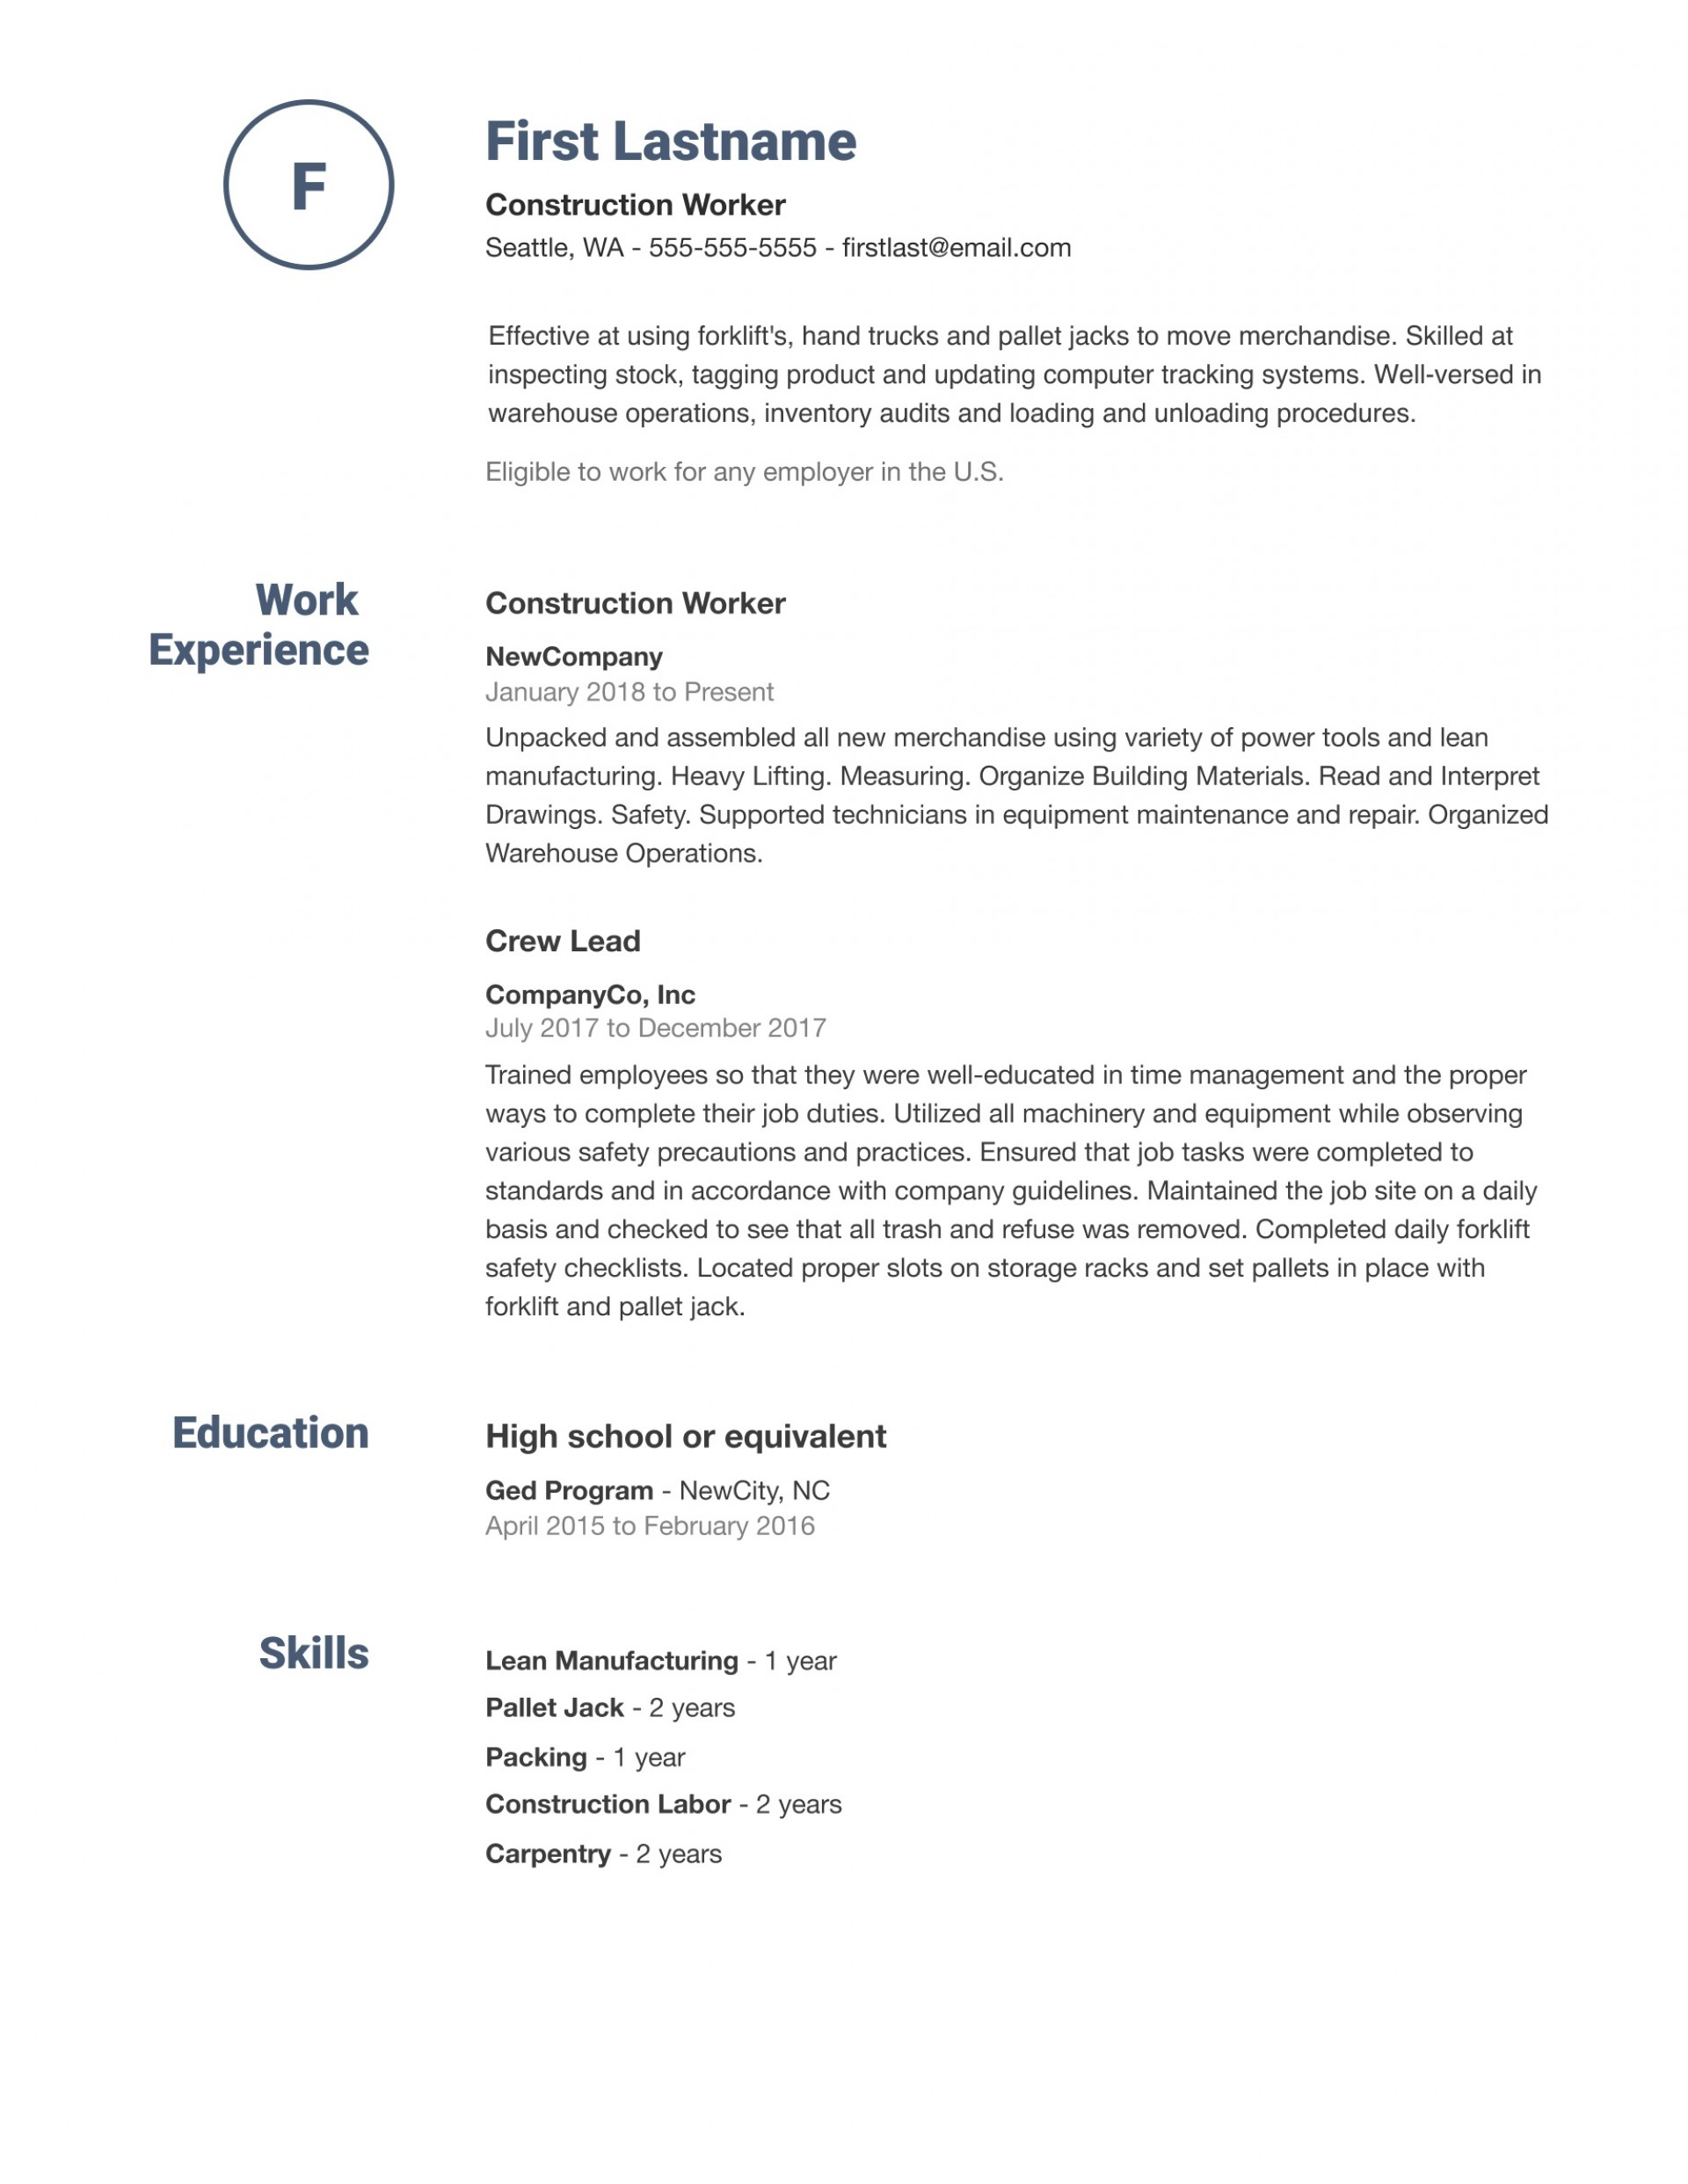 008 Dreaded Simple Job Resume Template Idea  Download First1920